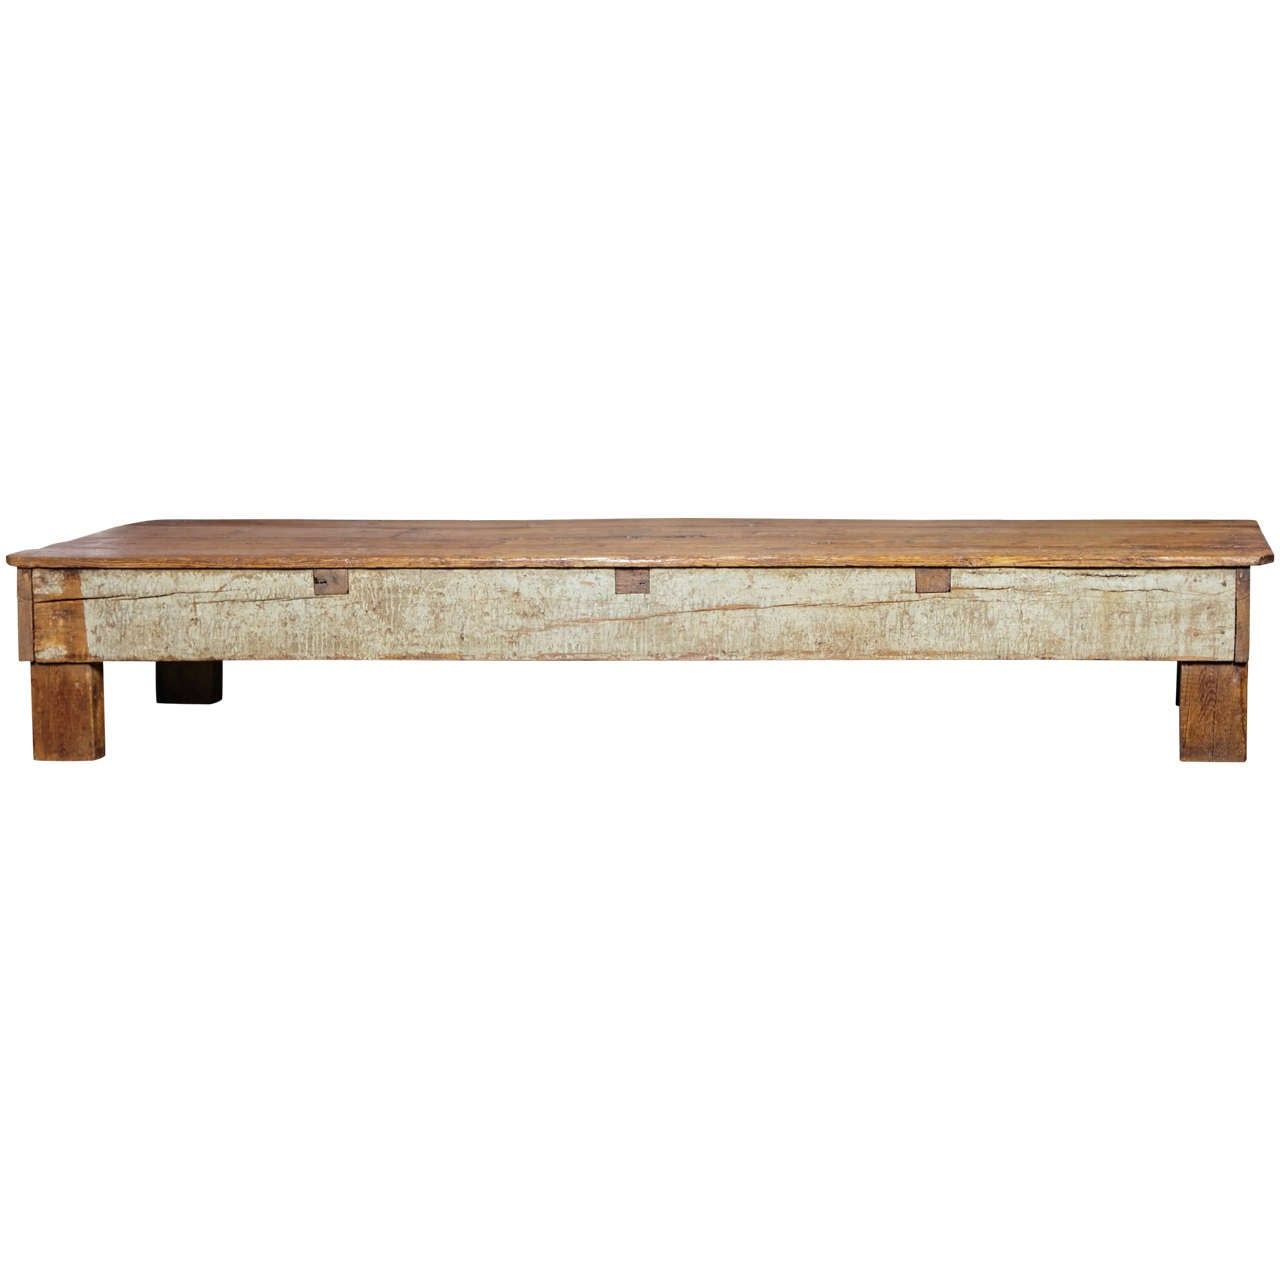 Long Low Coffee Table: French Shop Pine Bench Used For Long Coffee Table Or Low